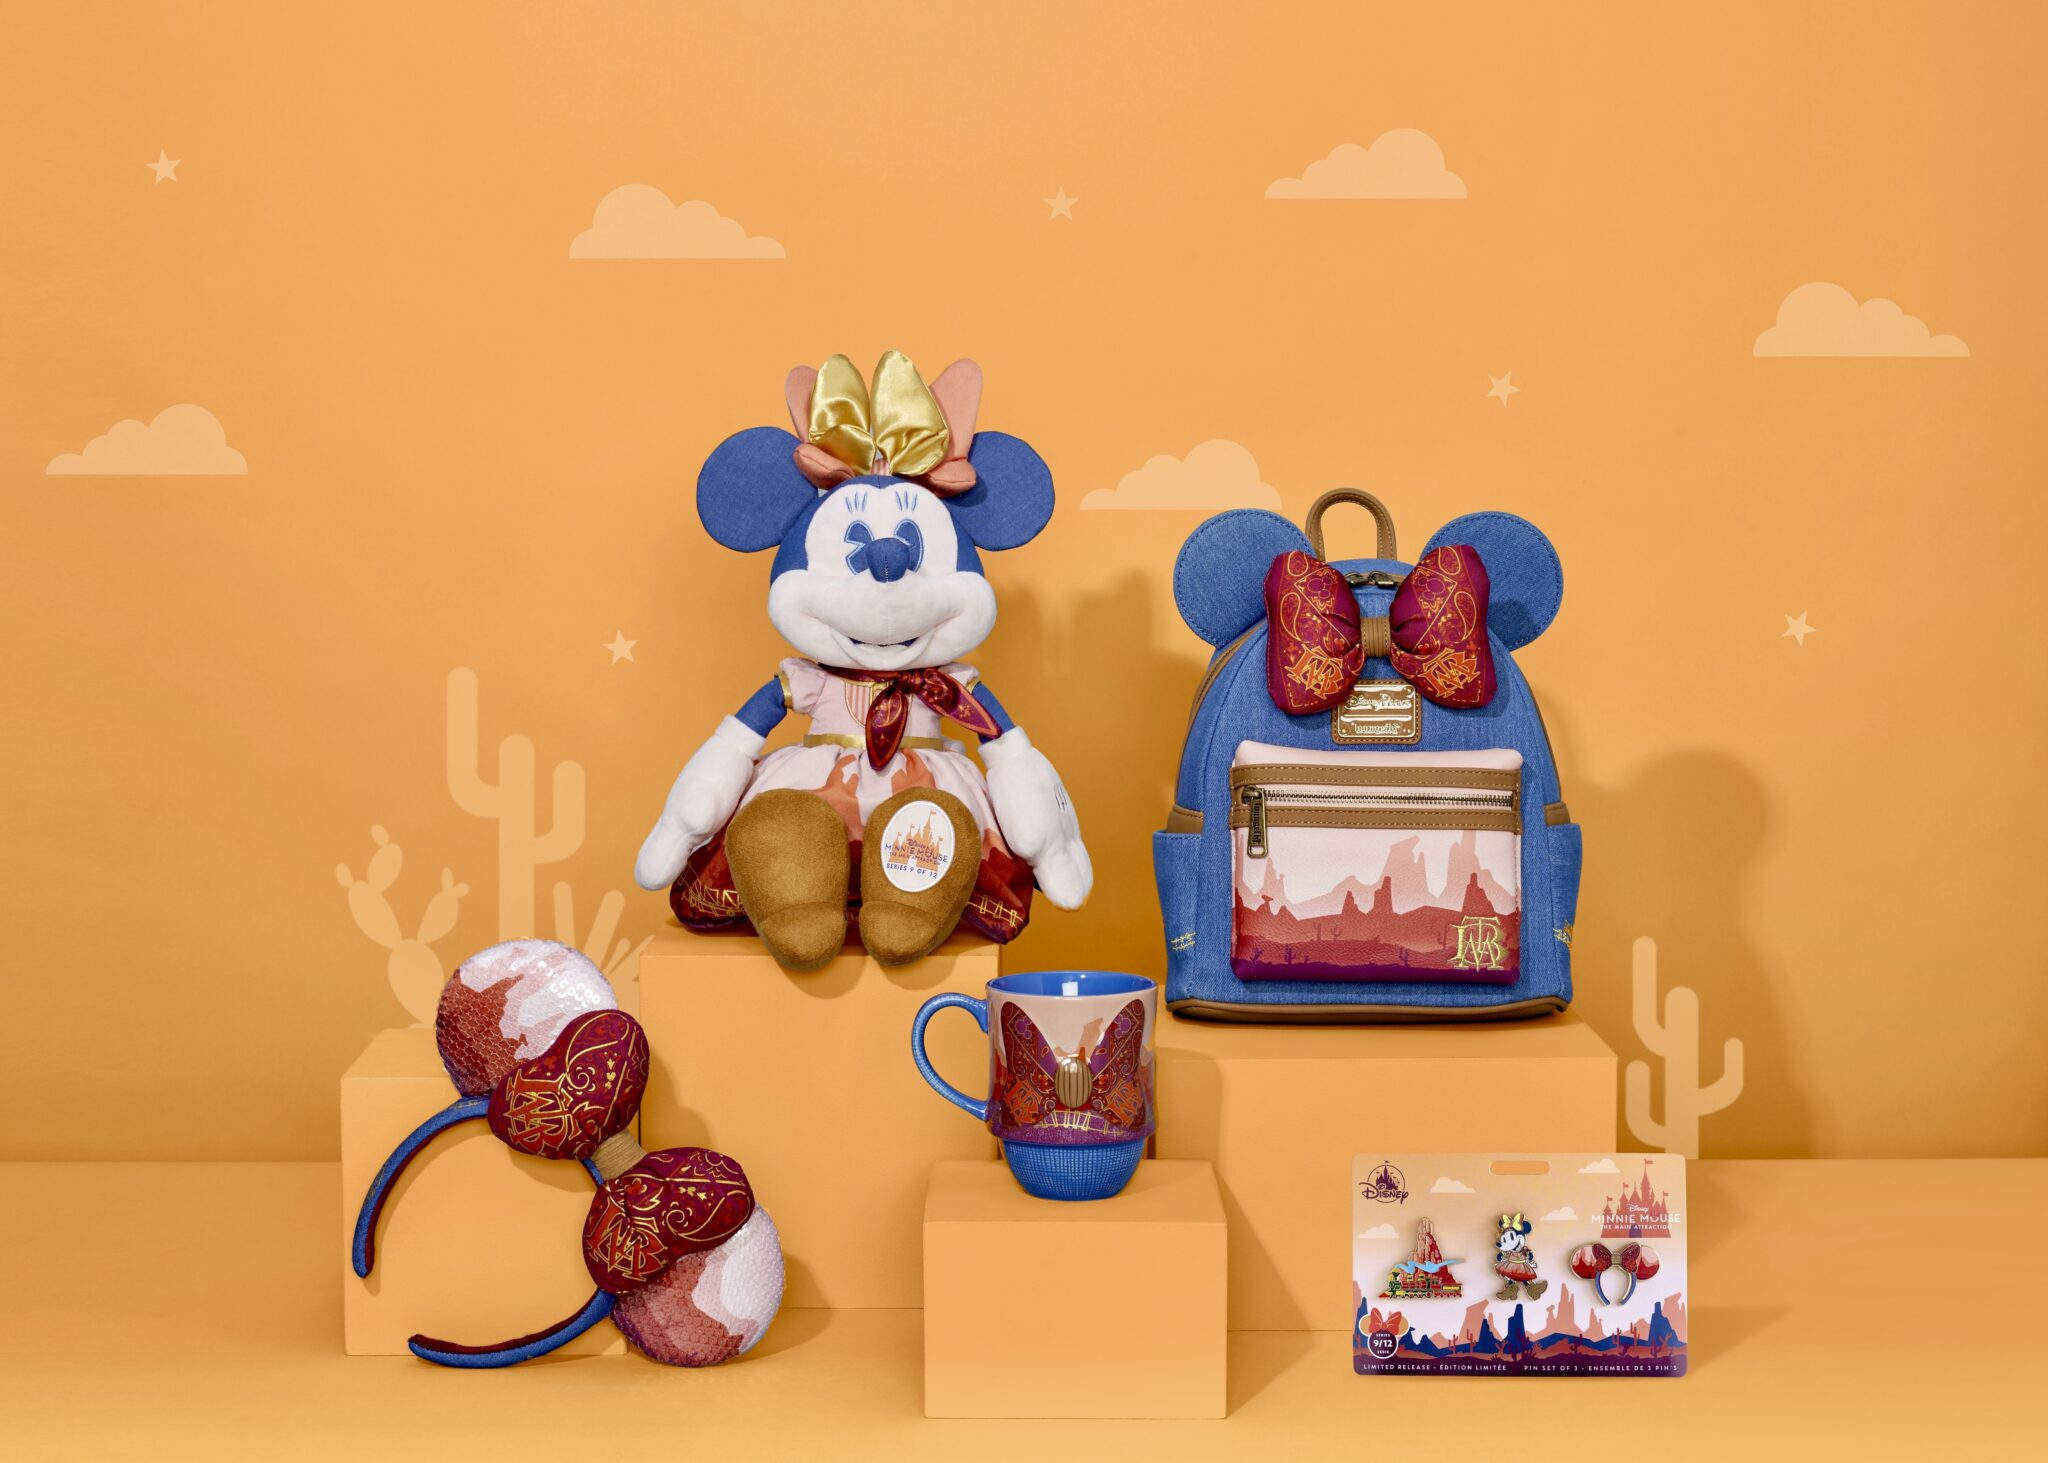 Minnie Mouse: The Main Attraction, Big Thunder Mountain Railroad, shopDisney